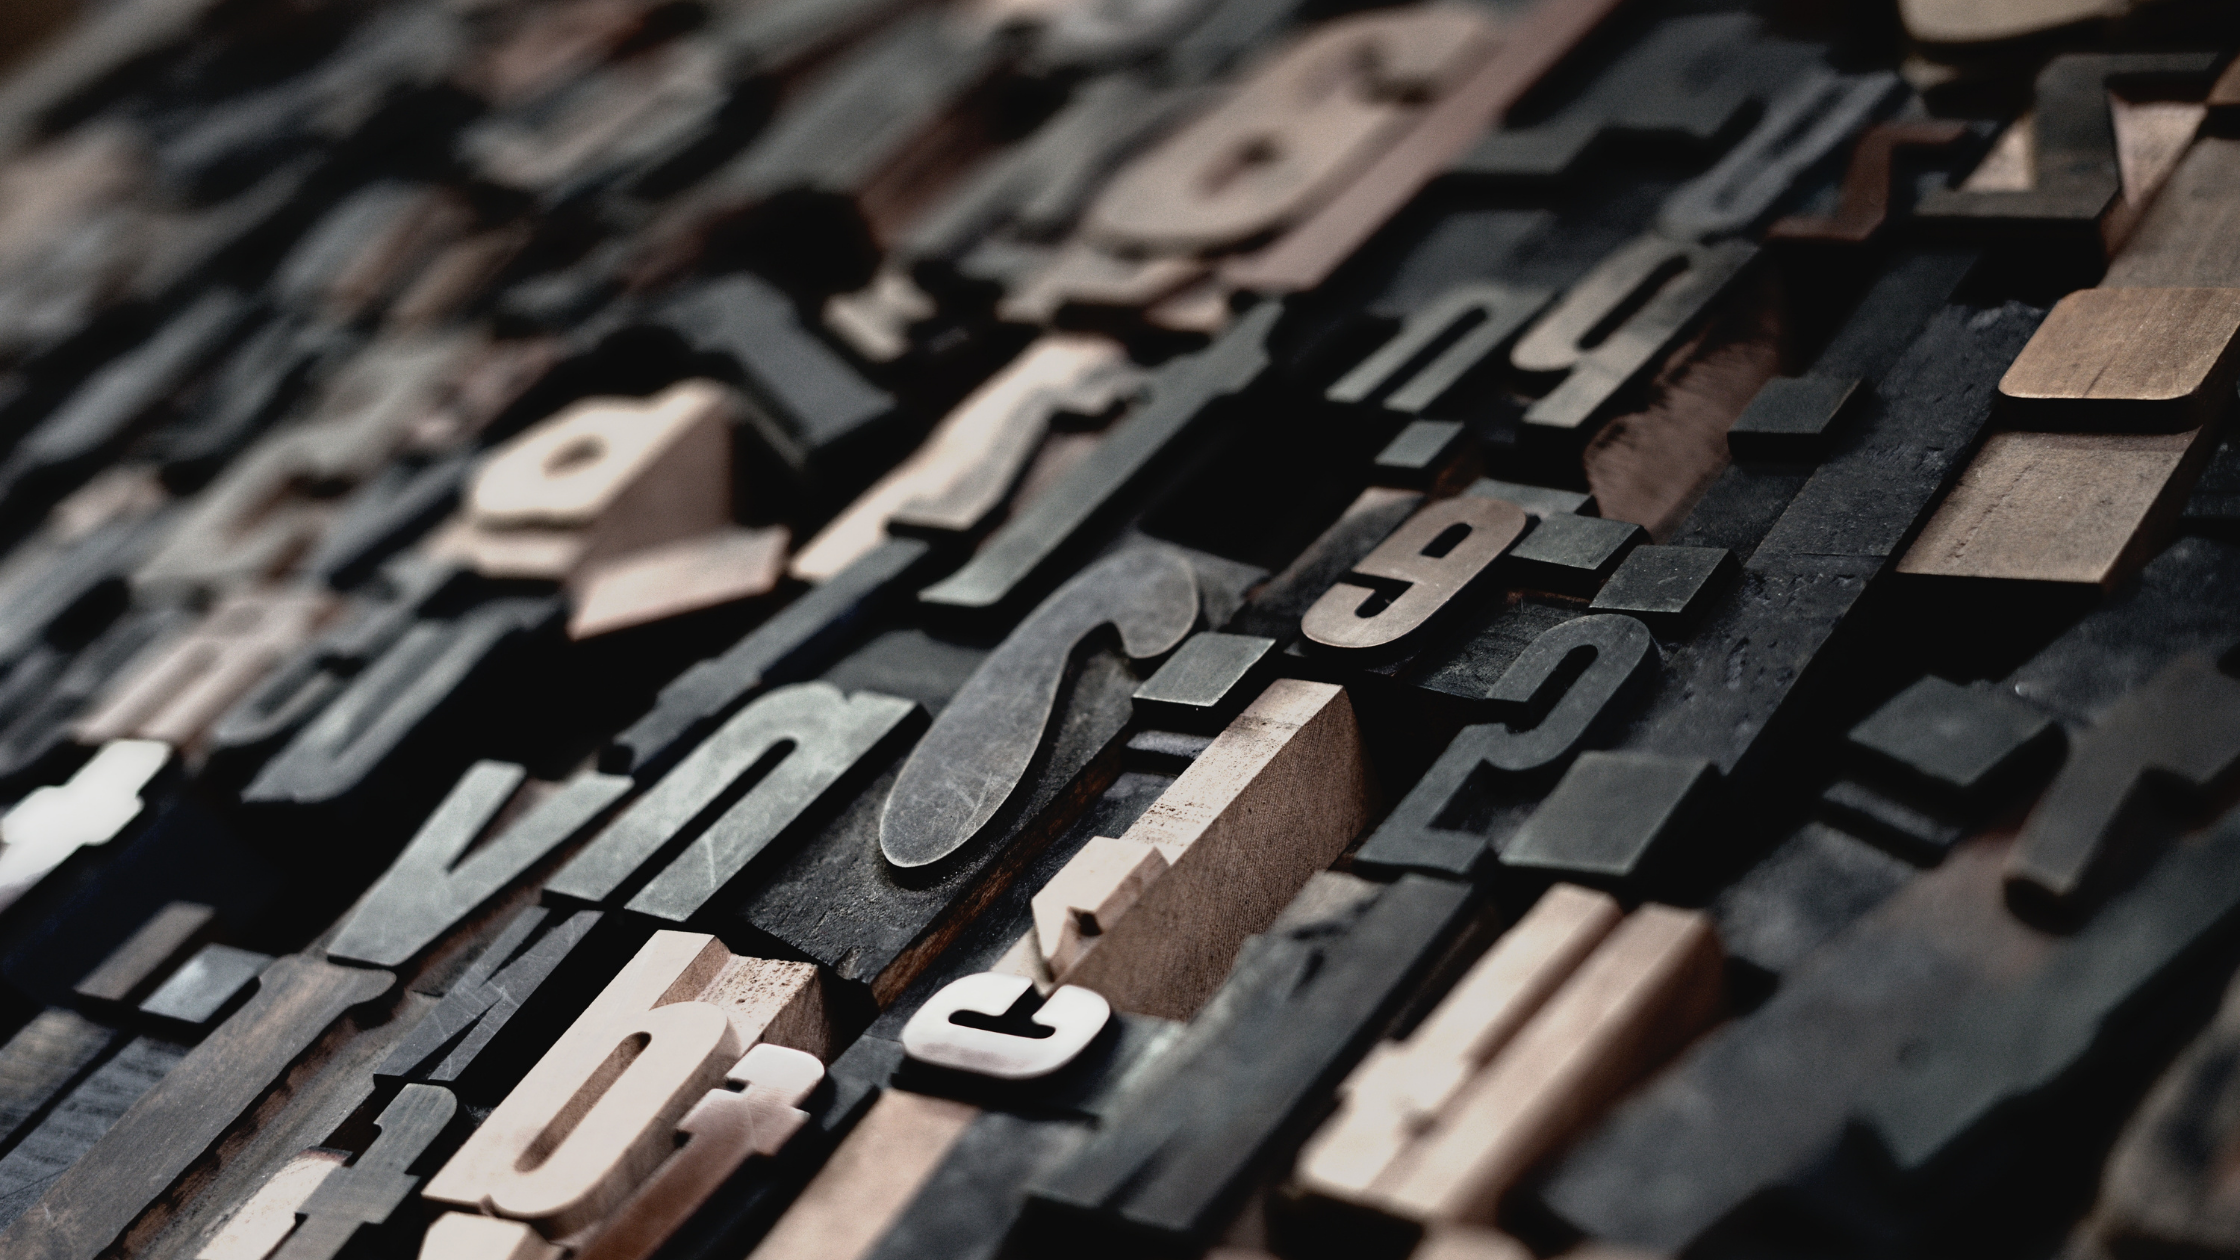 Scripture engagement - printing letters